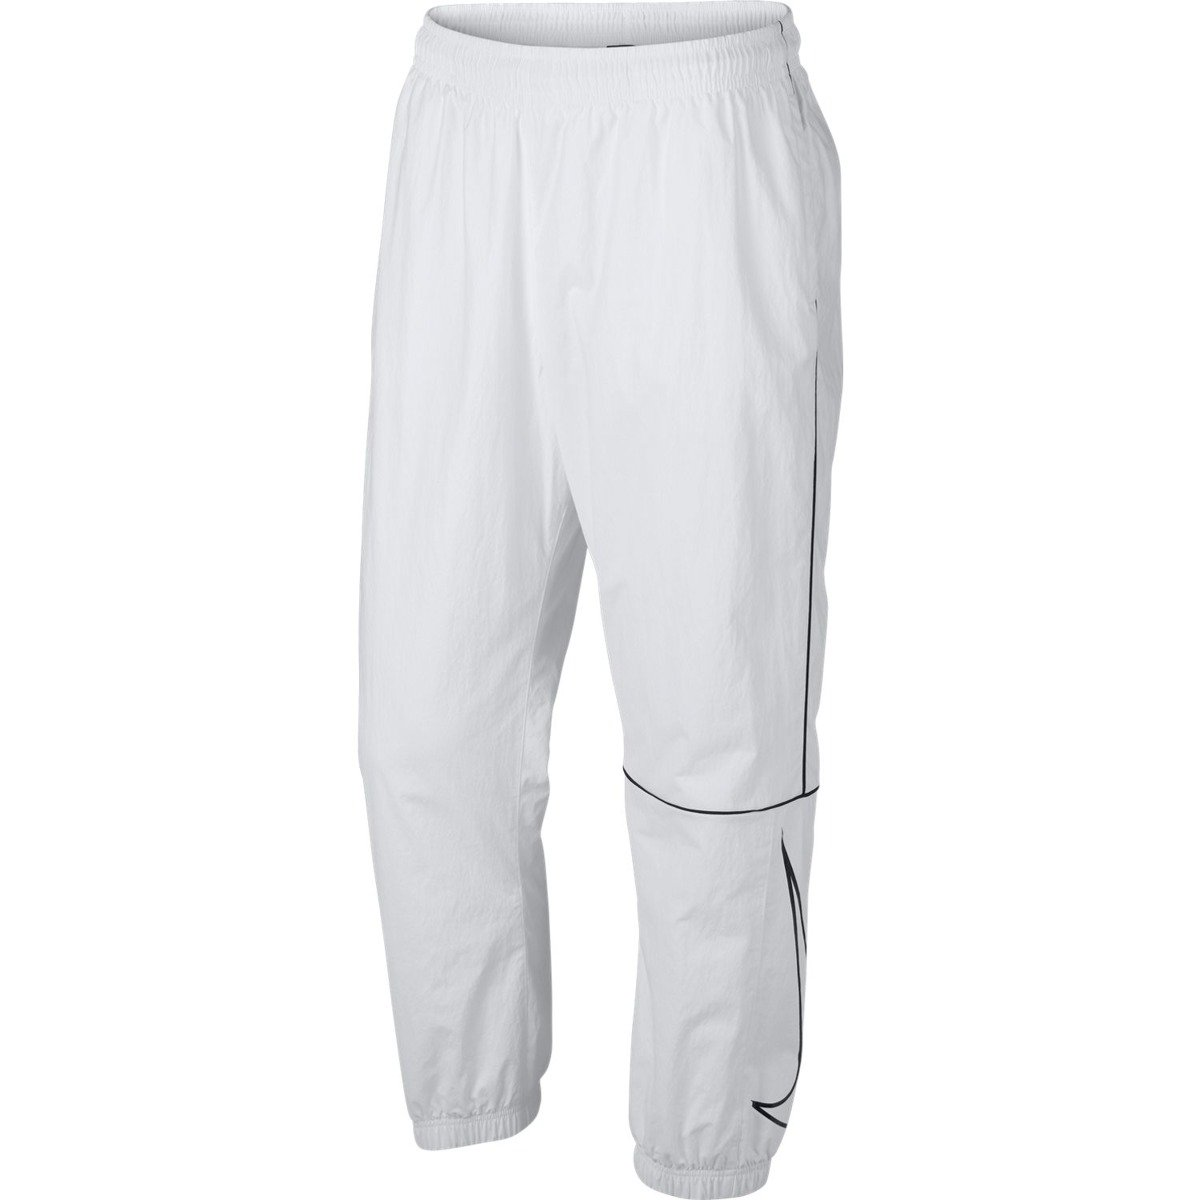 544289fb nike Sb Pant Track Swoosh pants White/black/black white | Clothes \ Pants  Brands \ Nike SB ALL | Skateshop Miniramp.pl